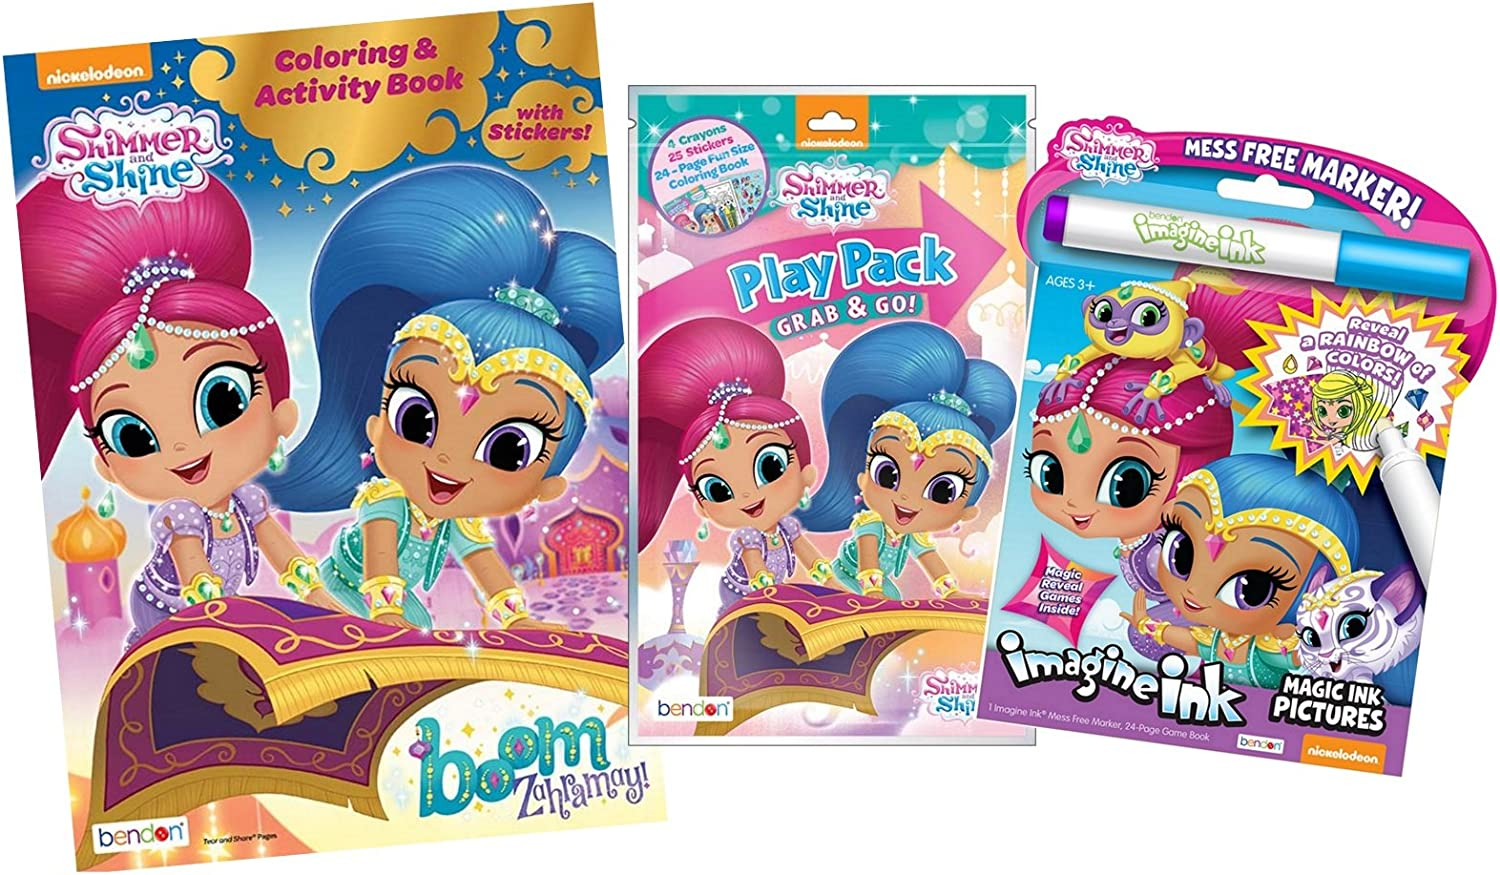 Amazon.com: Bundle Of 3 Shimmer And Shine Coloring & Activity